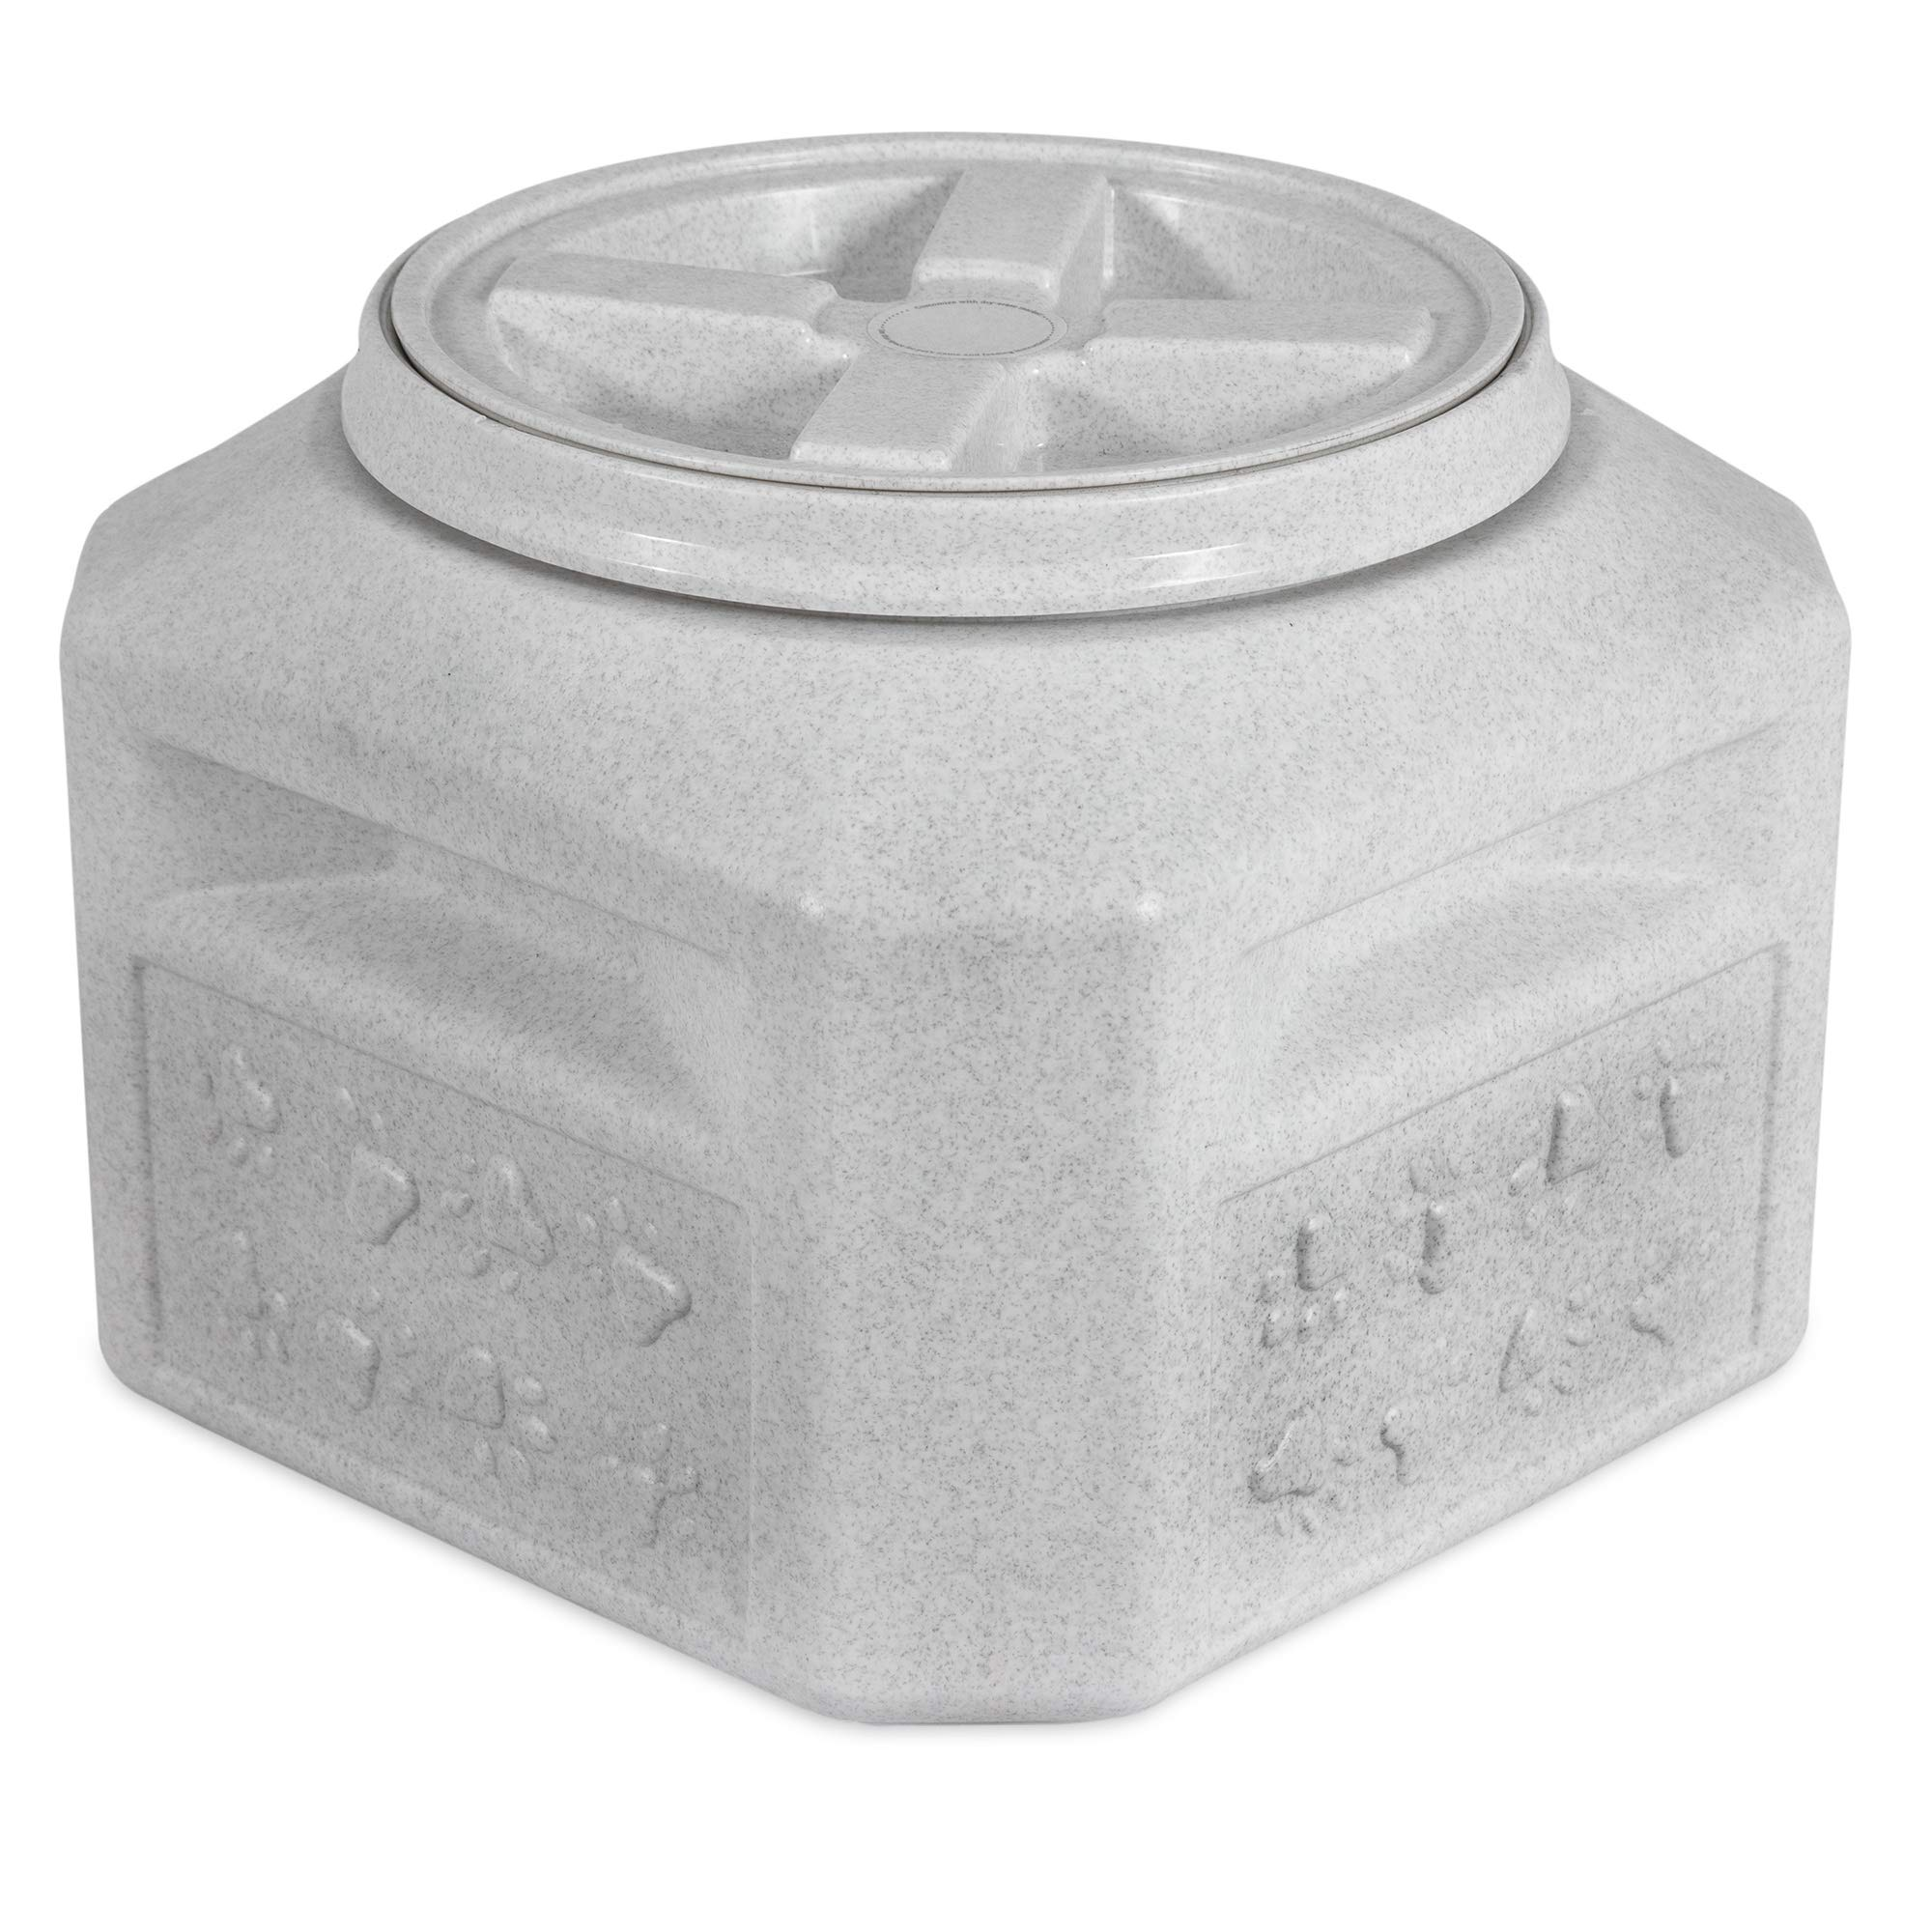 Vittles Vault Outback 15 lb Airtight Pet Food Storage Container (Packaging May Vary) by Gamma2